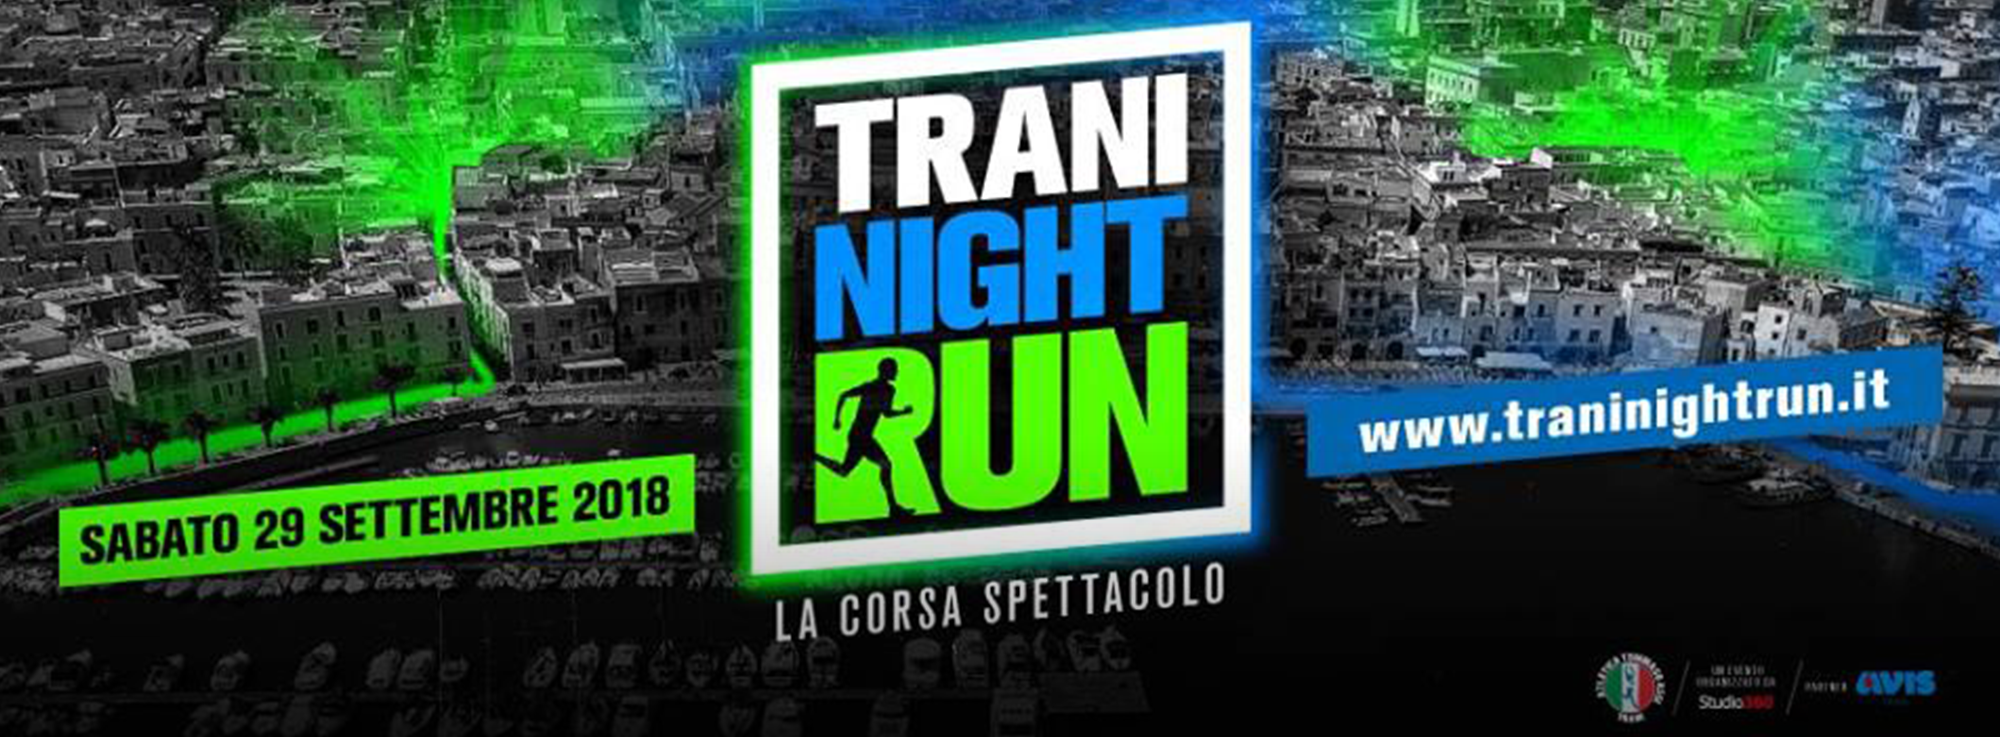 Trani: Trani Night Run